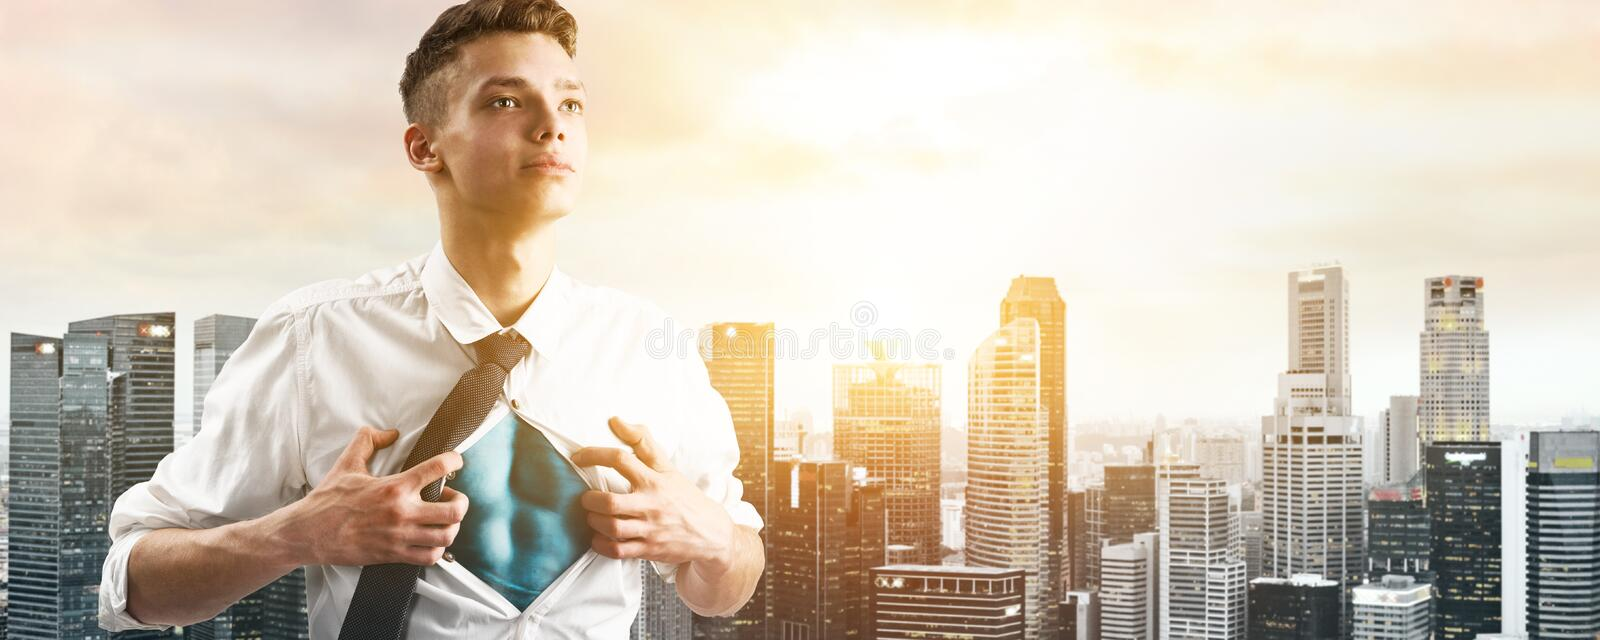 Business super hero hover over city skyline. Business superhero. Young businessman showing super hero suit under his shirt down town on sunset royalty free stock photos